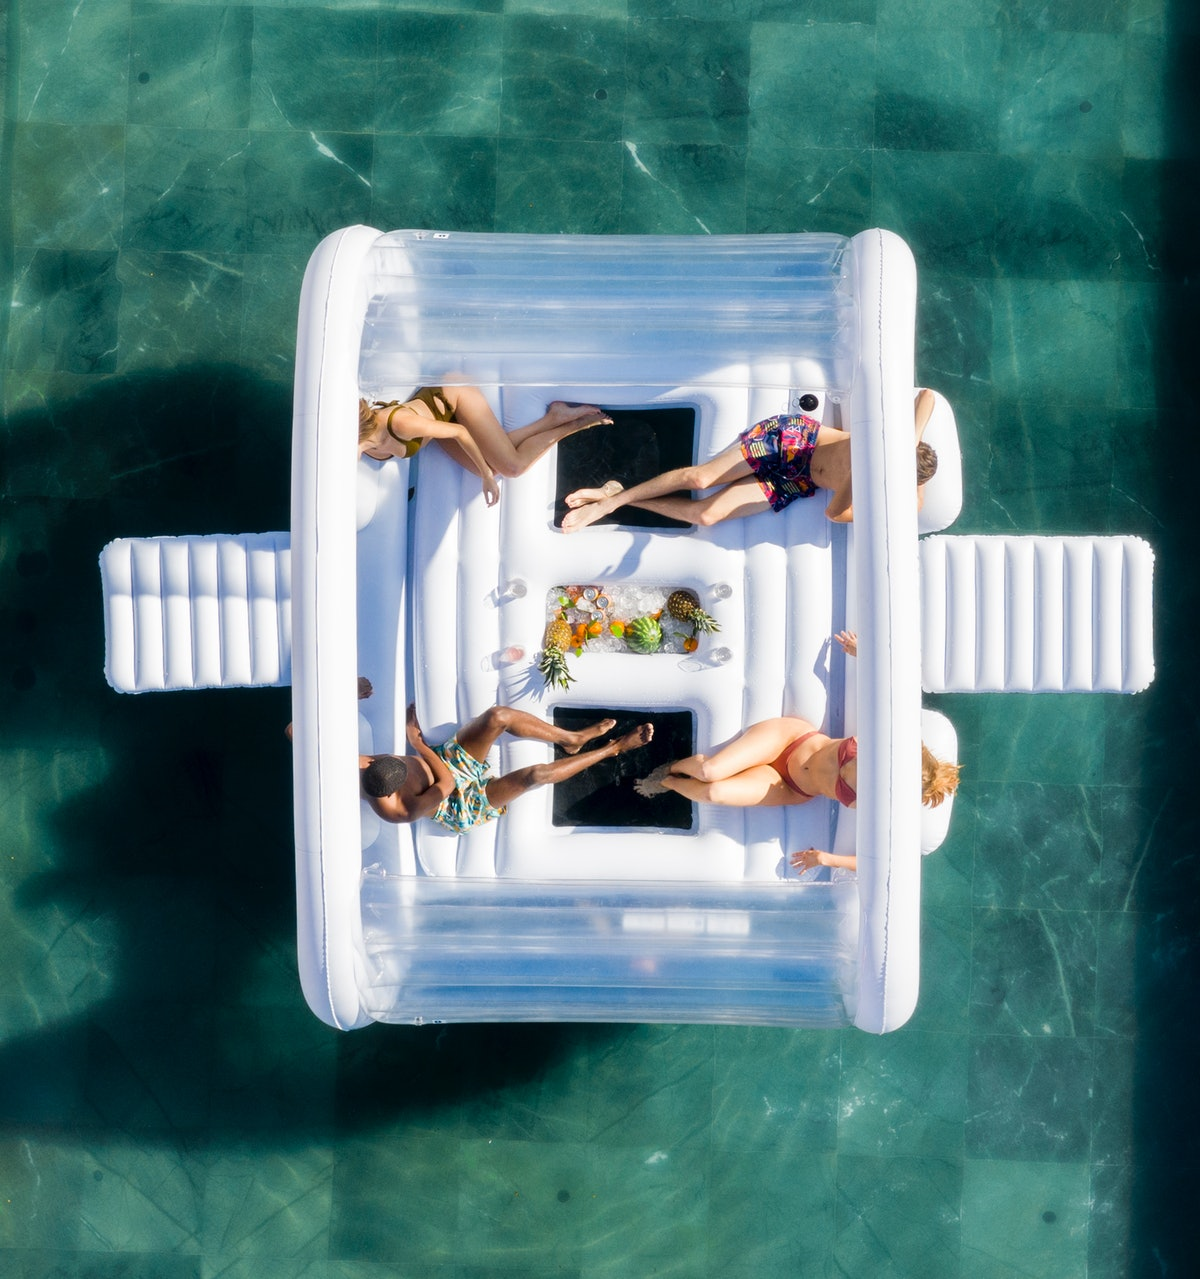 An aerial shot of a group of friends shows them hanging out in a pool on FUNBOY's Giant Dayclub pool...